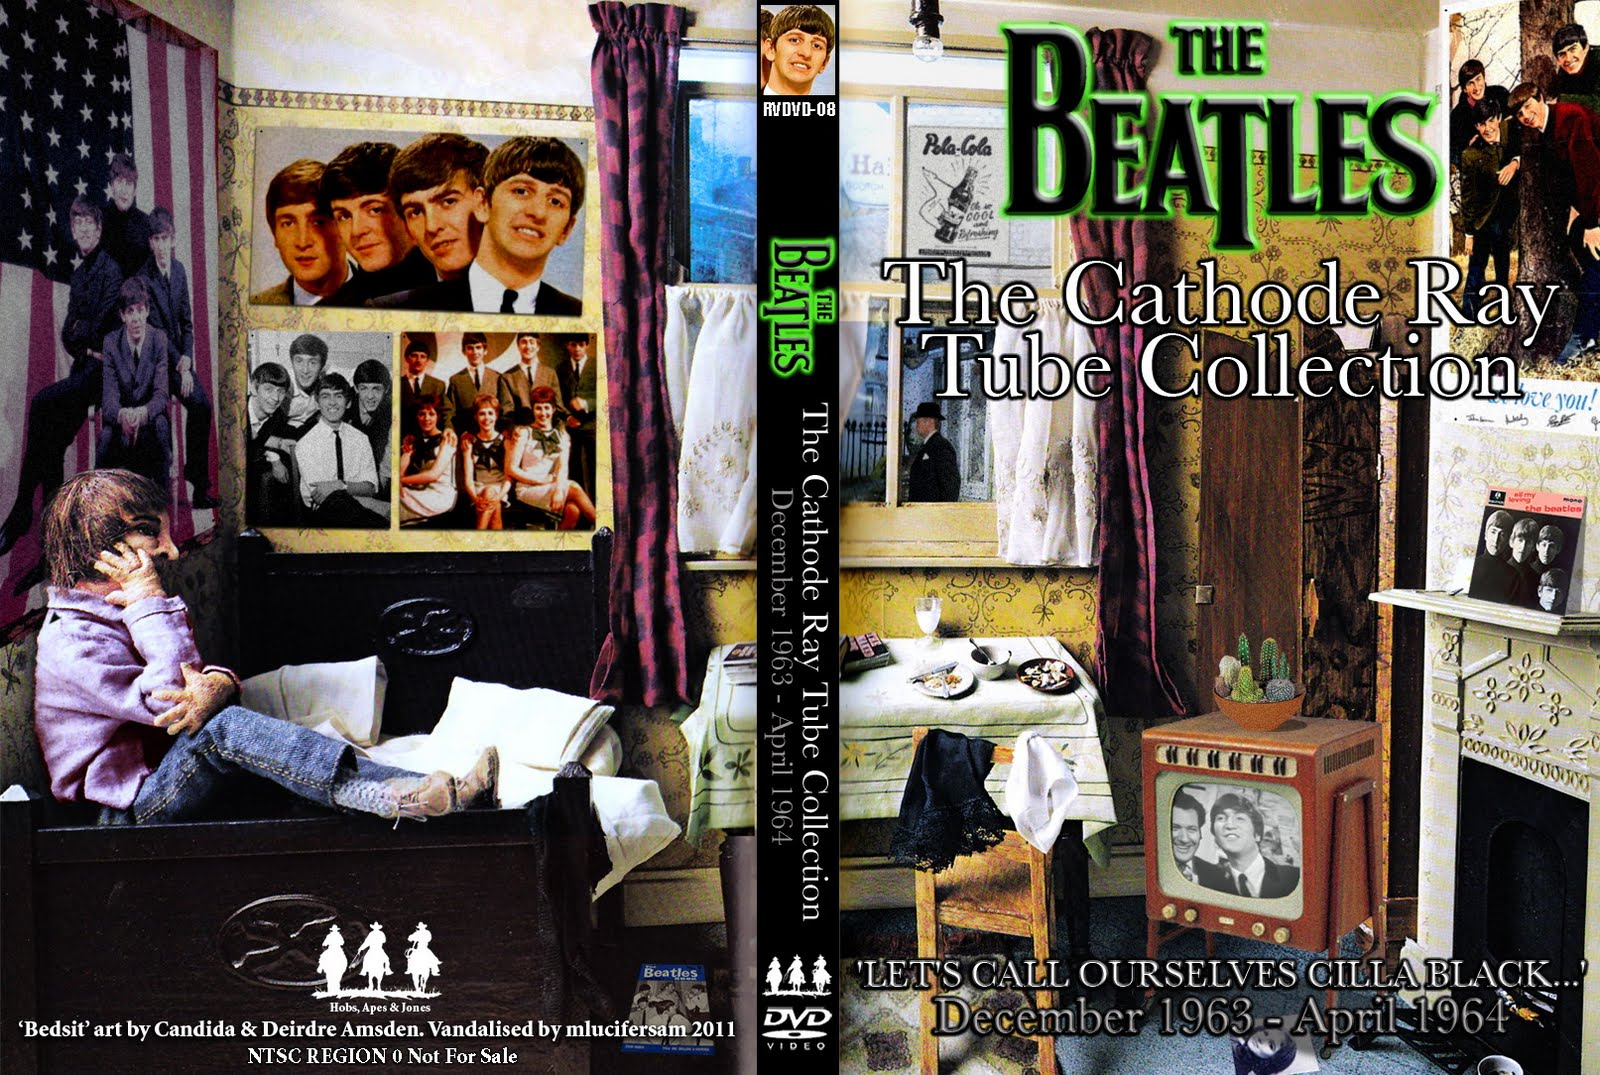 The Beatles Cathode ray tube collection (8 DVDS)